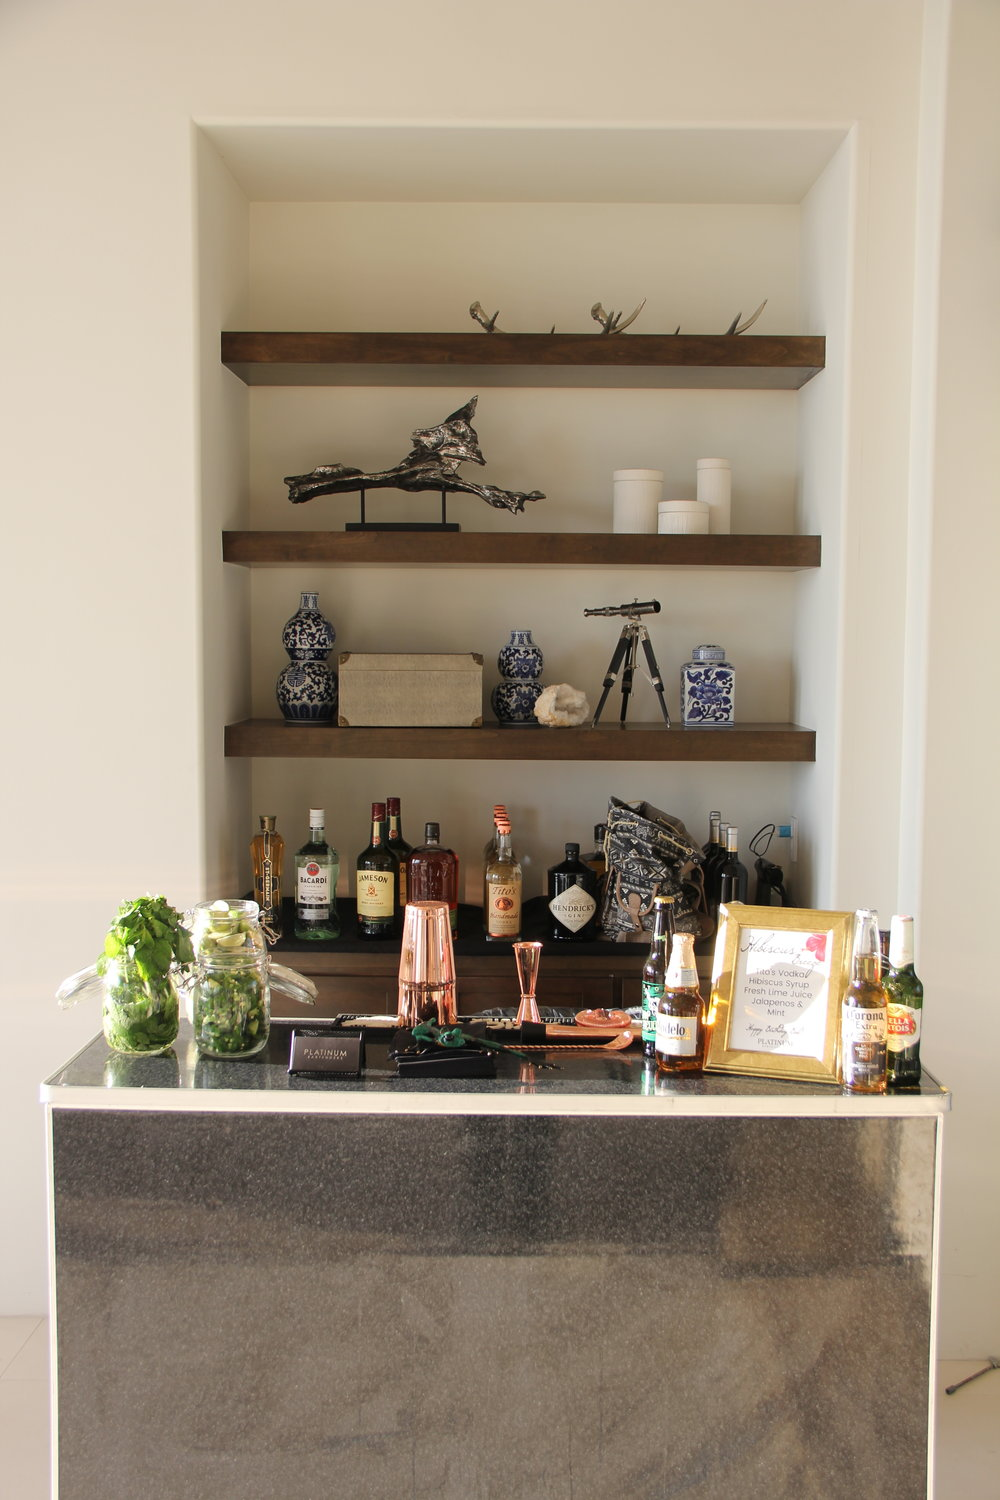 Our 4'ft mobile bar in a private party in Malibu!